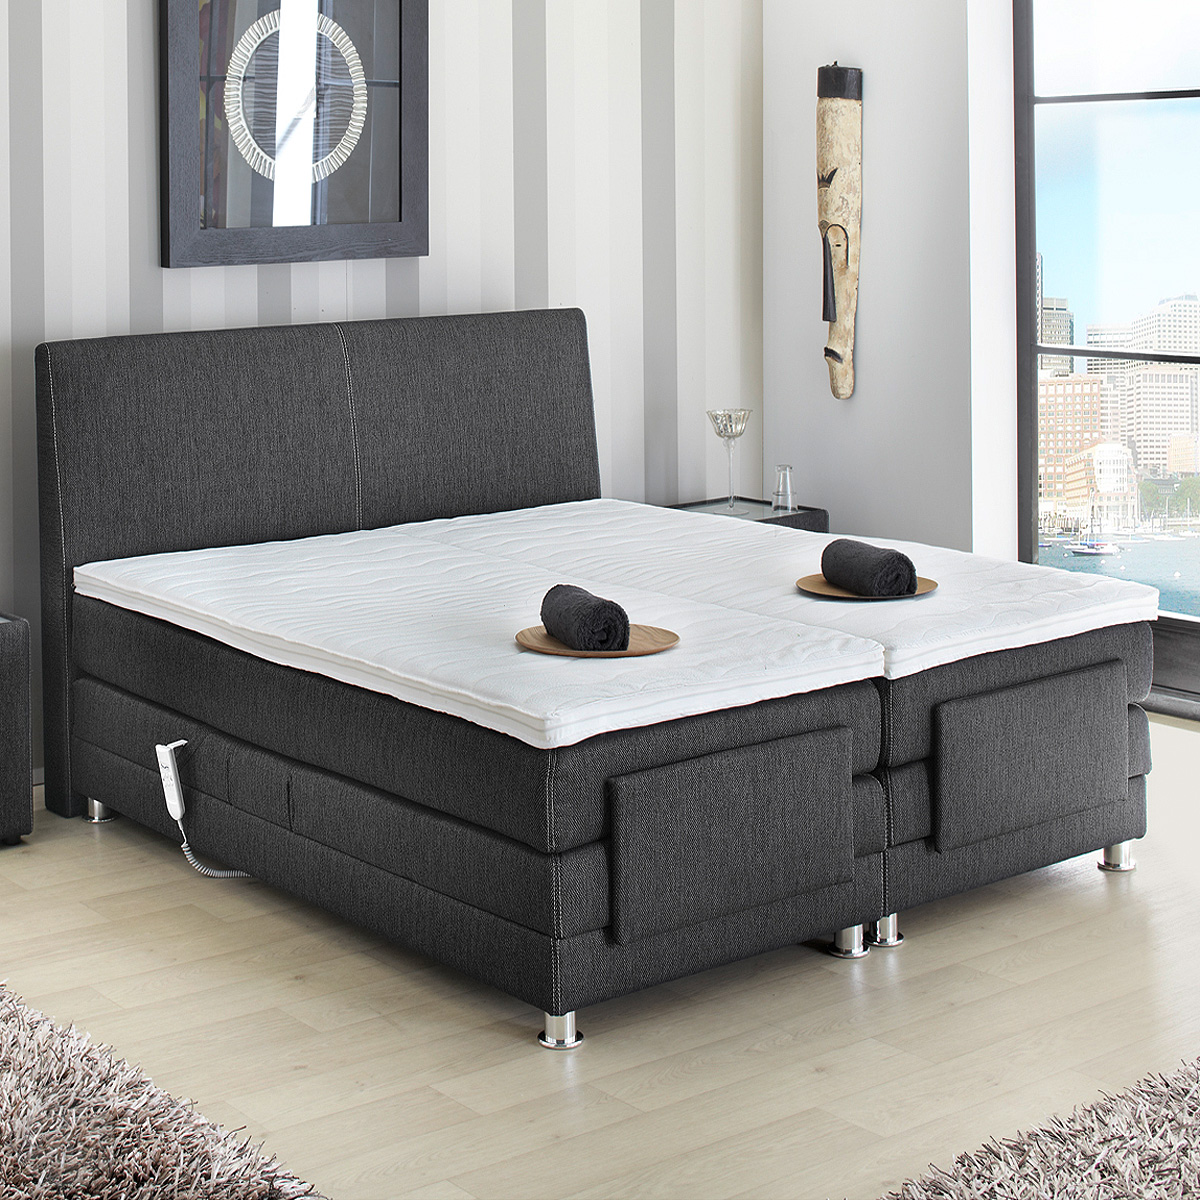 boxspring bett raffinetto doppelbett hotelbett schwarz motorisiert inkl topper ebay. Black Bedroom Furniture Sets. Home Design Ideas